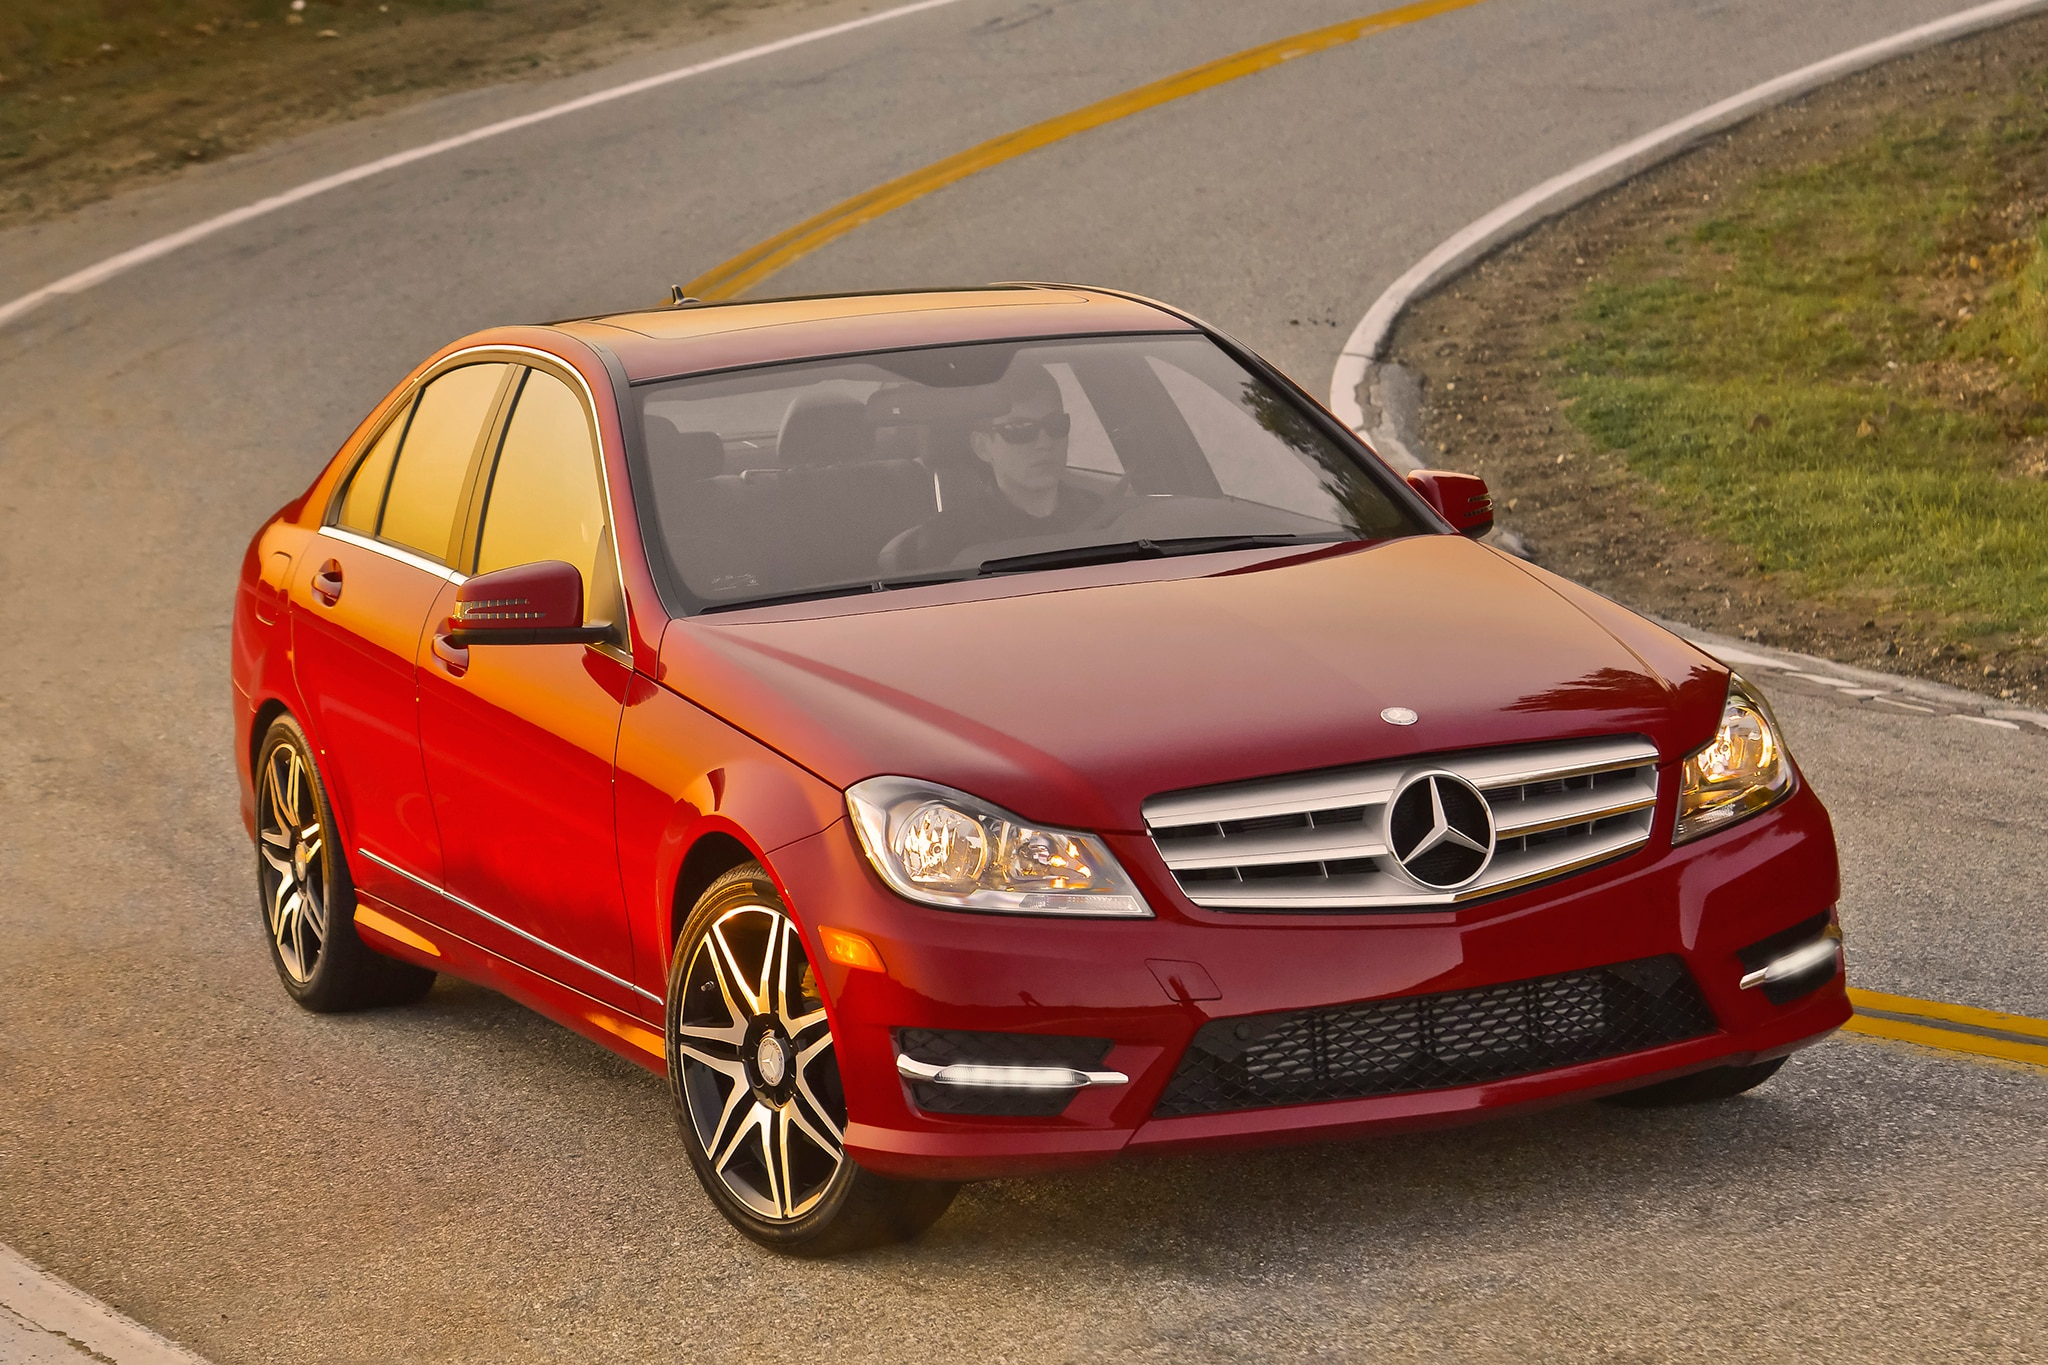 2013 14 mercedes benz c300 4matic fuel economy revised by epa. Black Bedroom Furniture Sets. Home Design Ideas